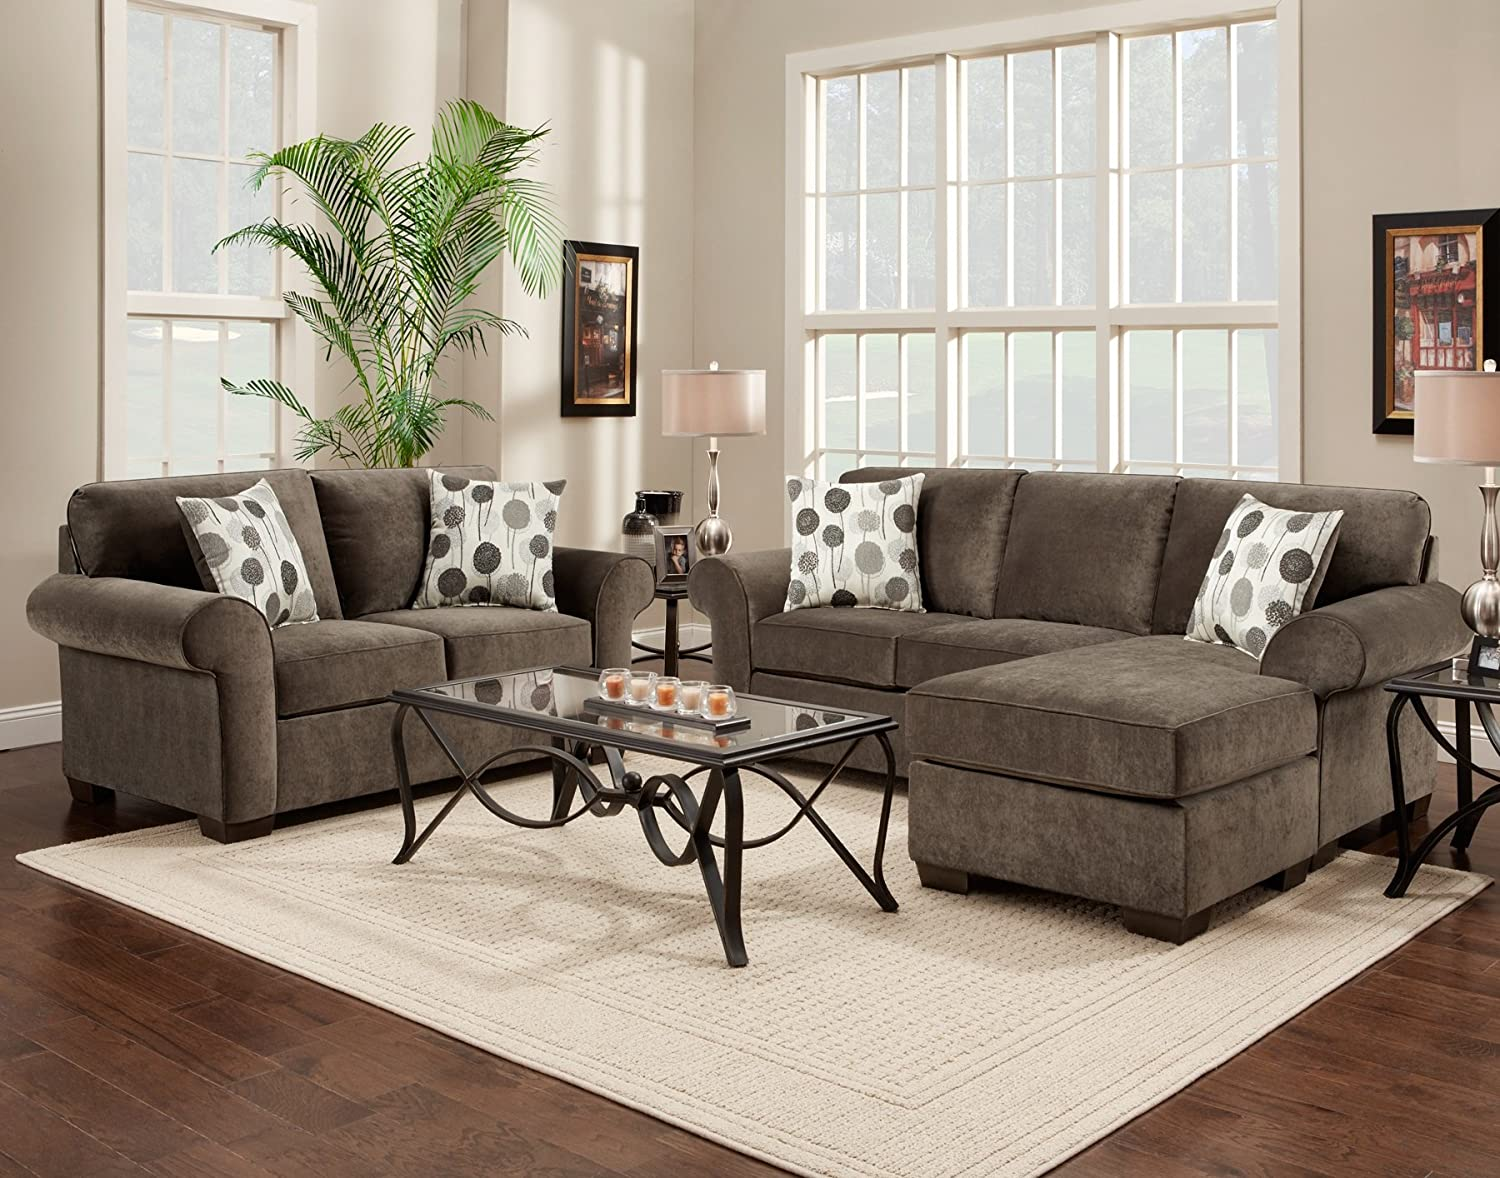 Roundhill Furniture Fabric Loveseat with 2 Pillows - Elizabeth Ash